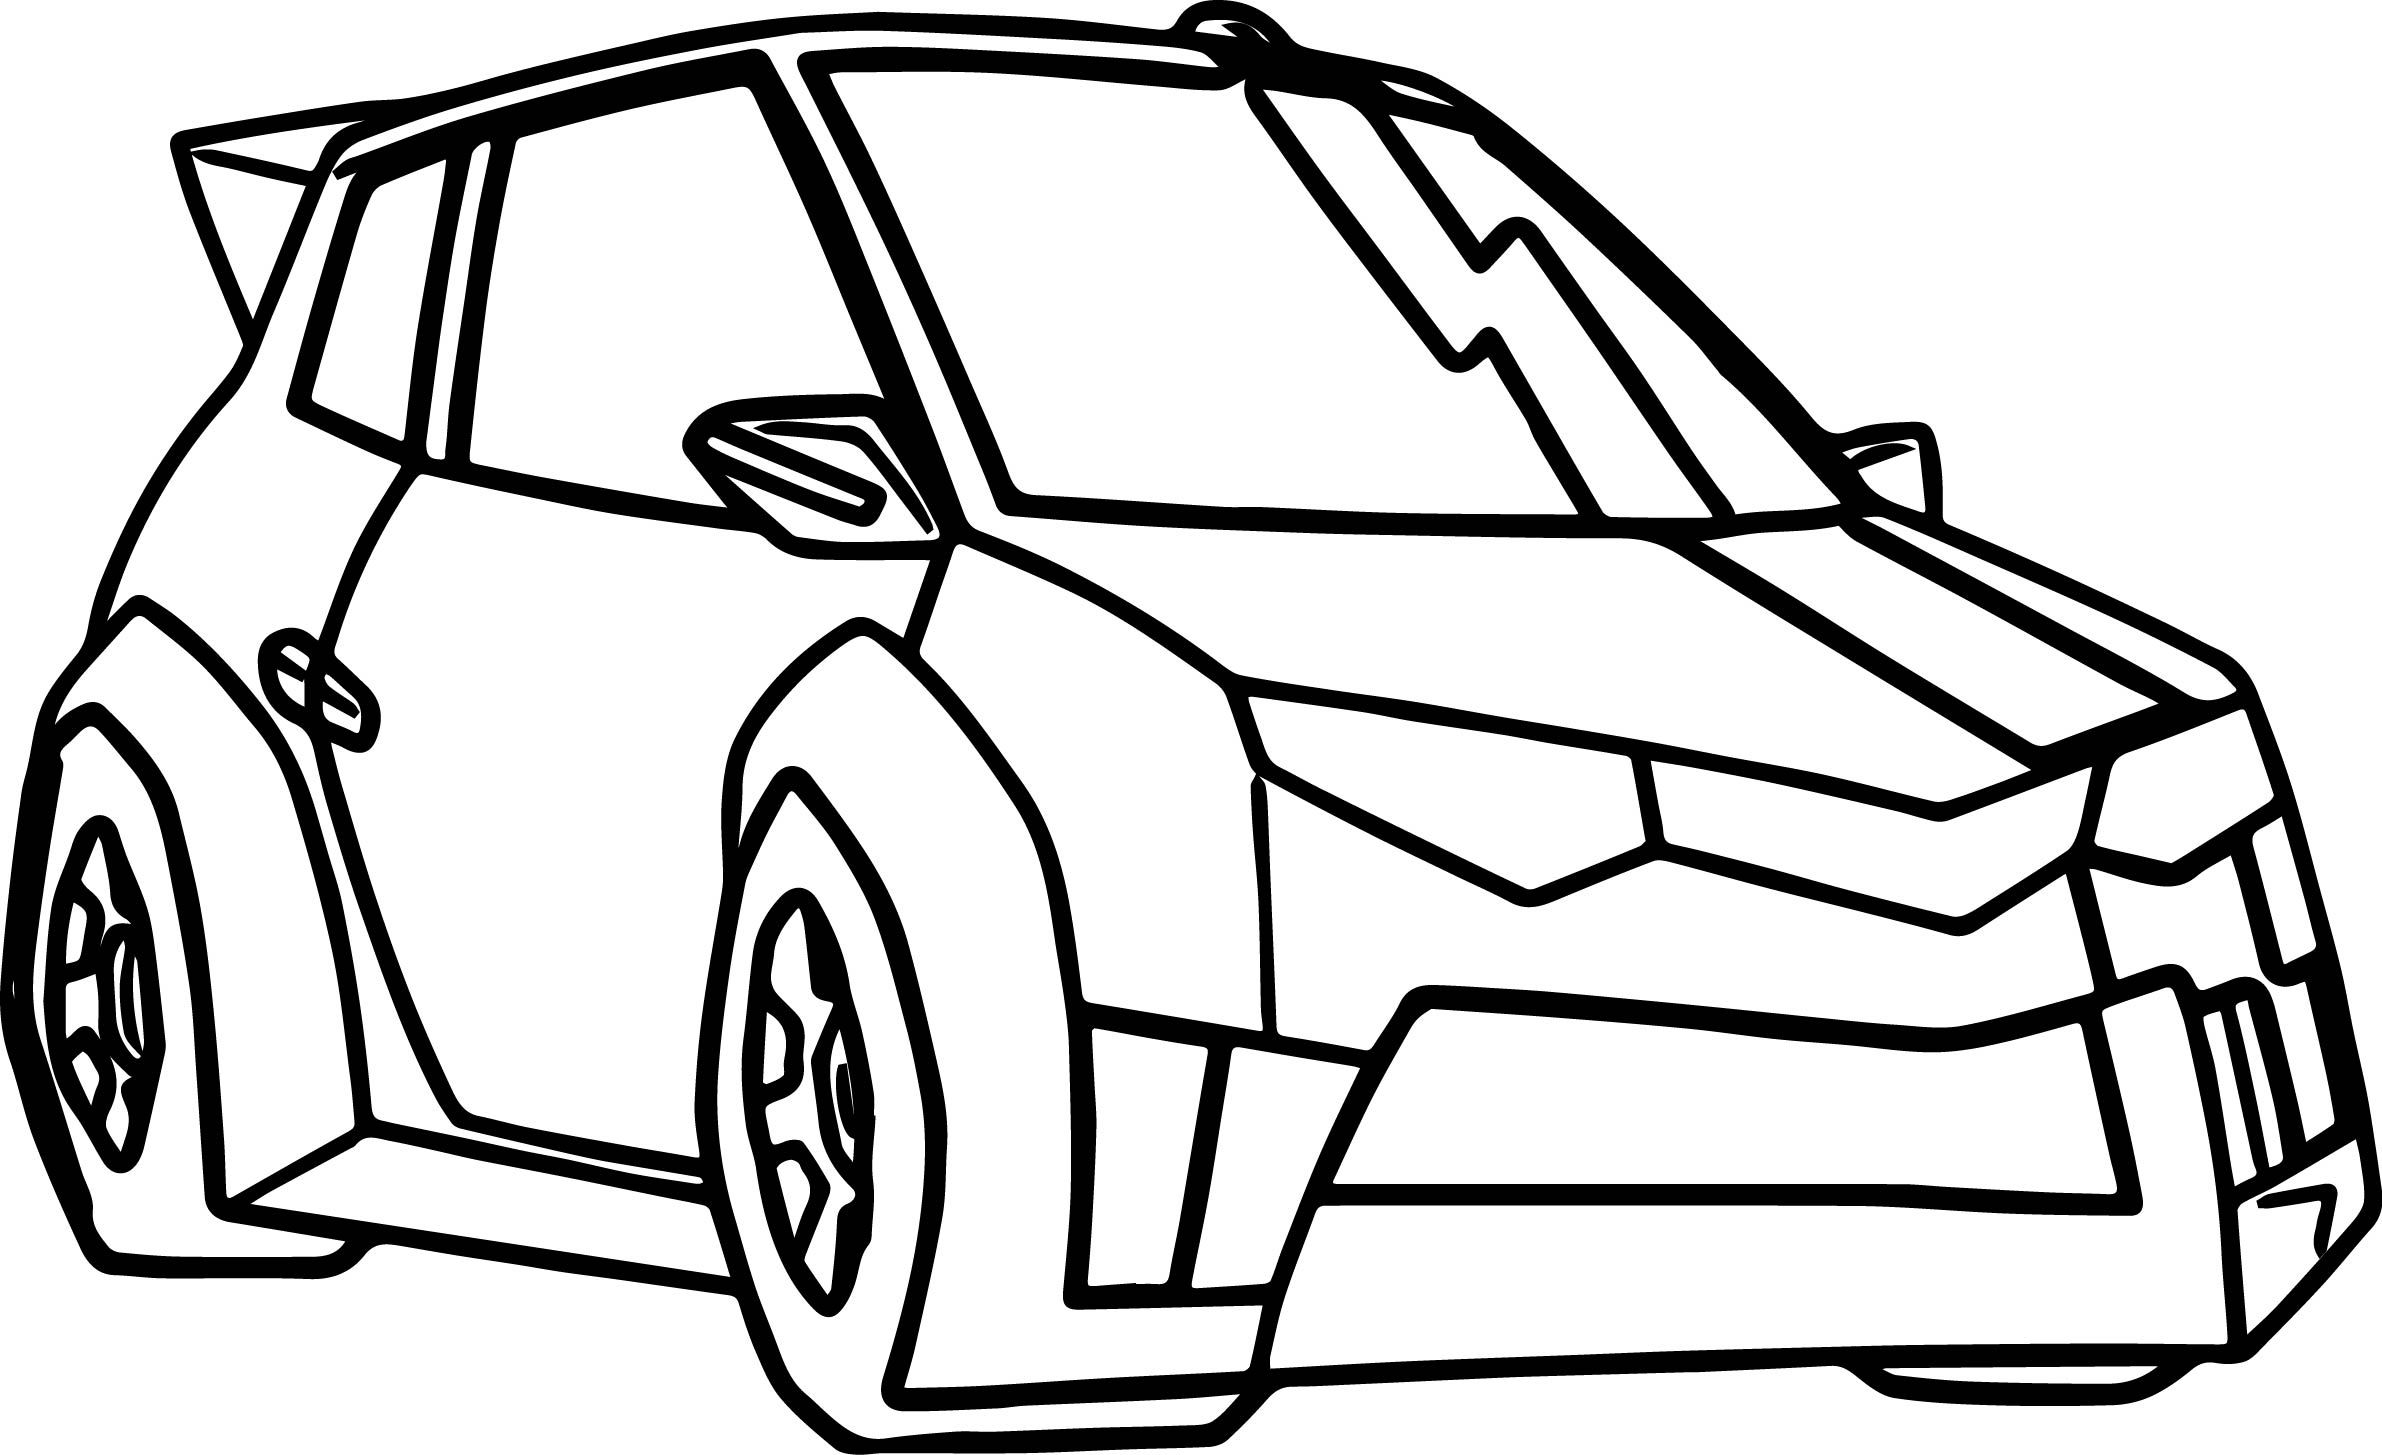 Transformers Car Coloring Page Cars coloring pages